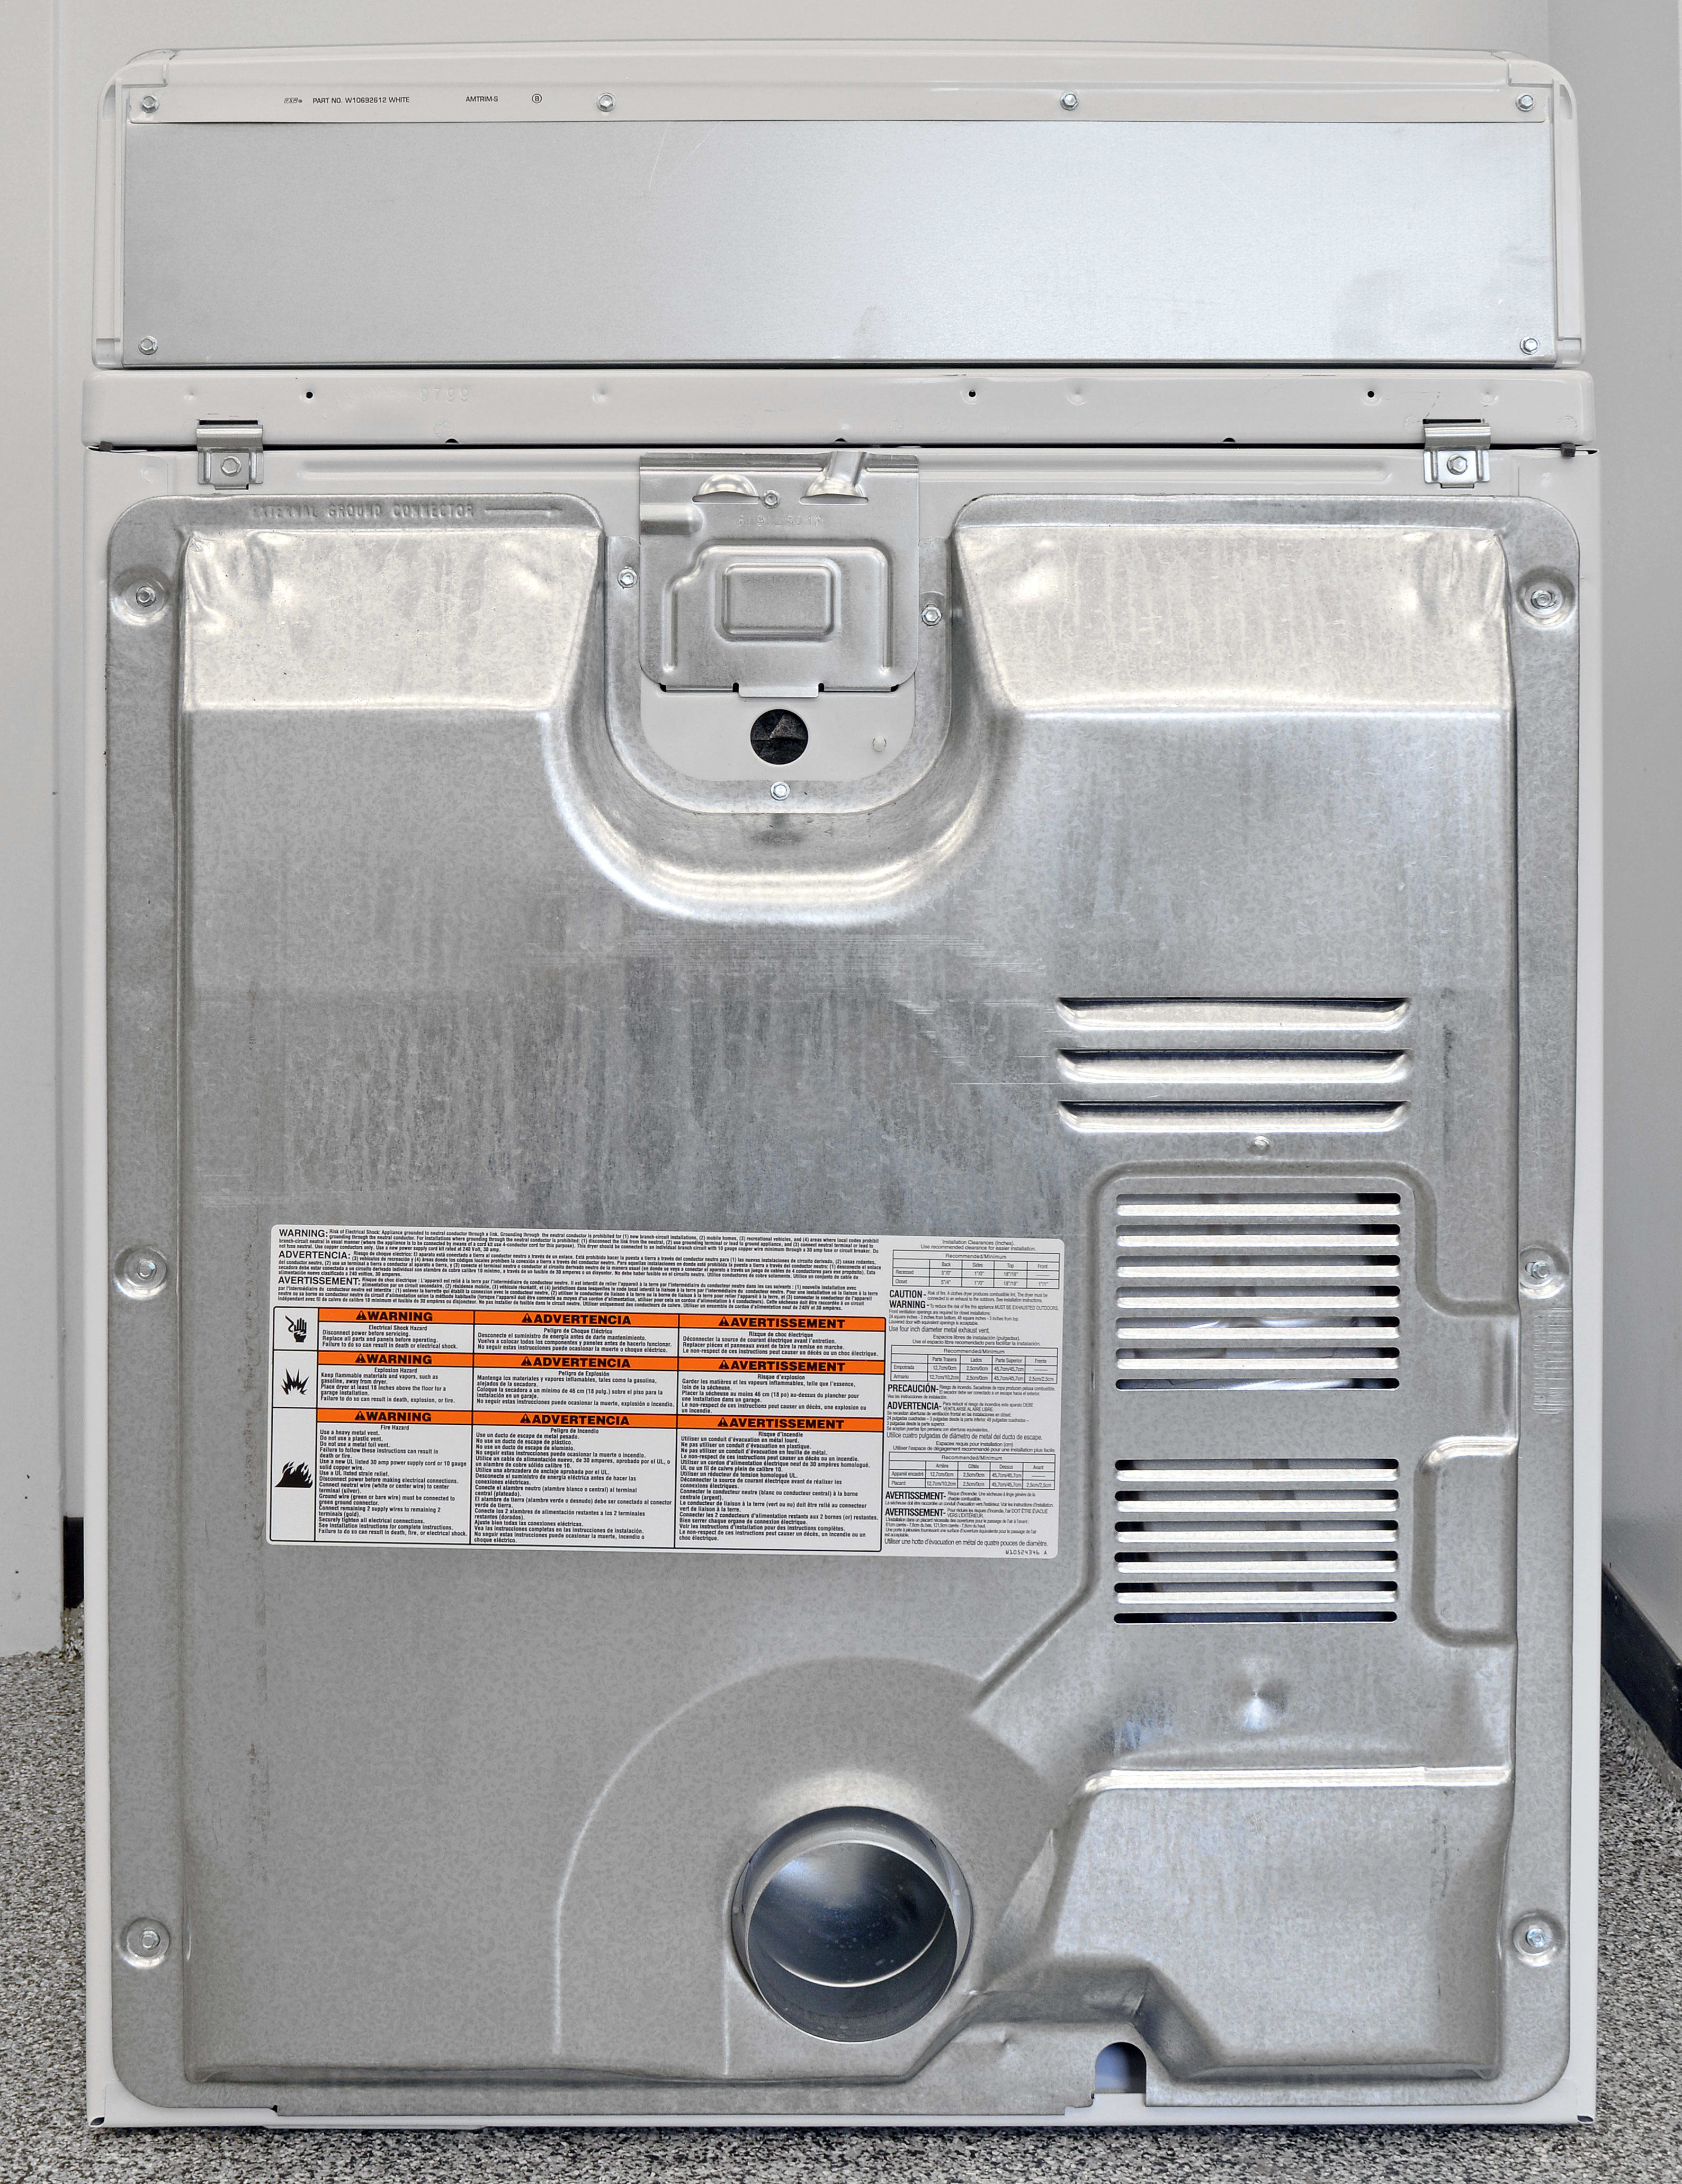 No steam means no water input in the back of the Maytag Centennial MEDC215EW.